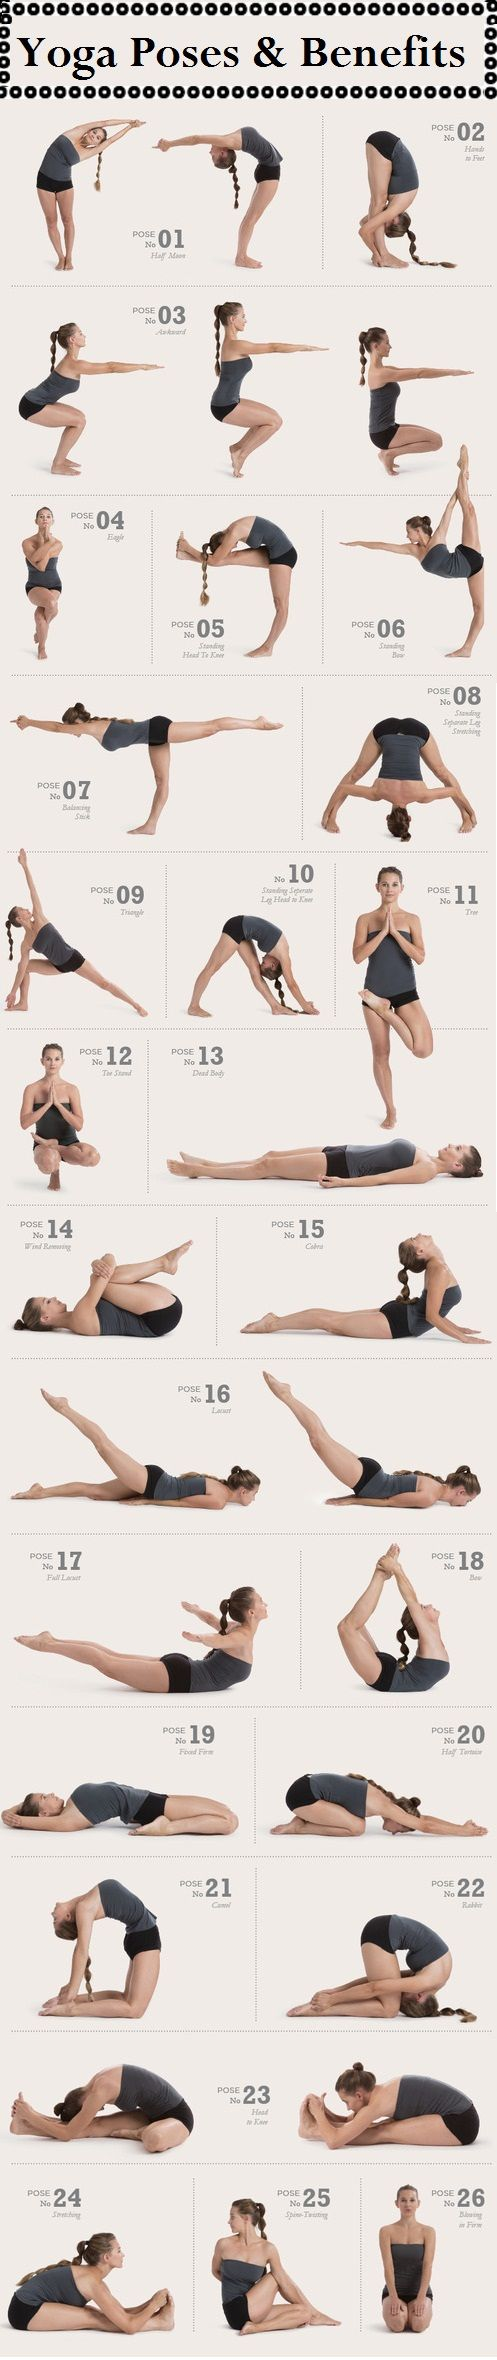 Hot yoga sequence. Great to have for when you are snowed in and can't make it to the studio...